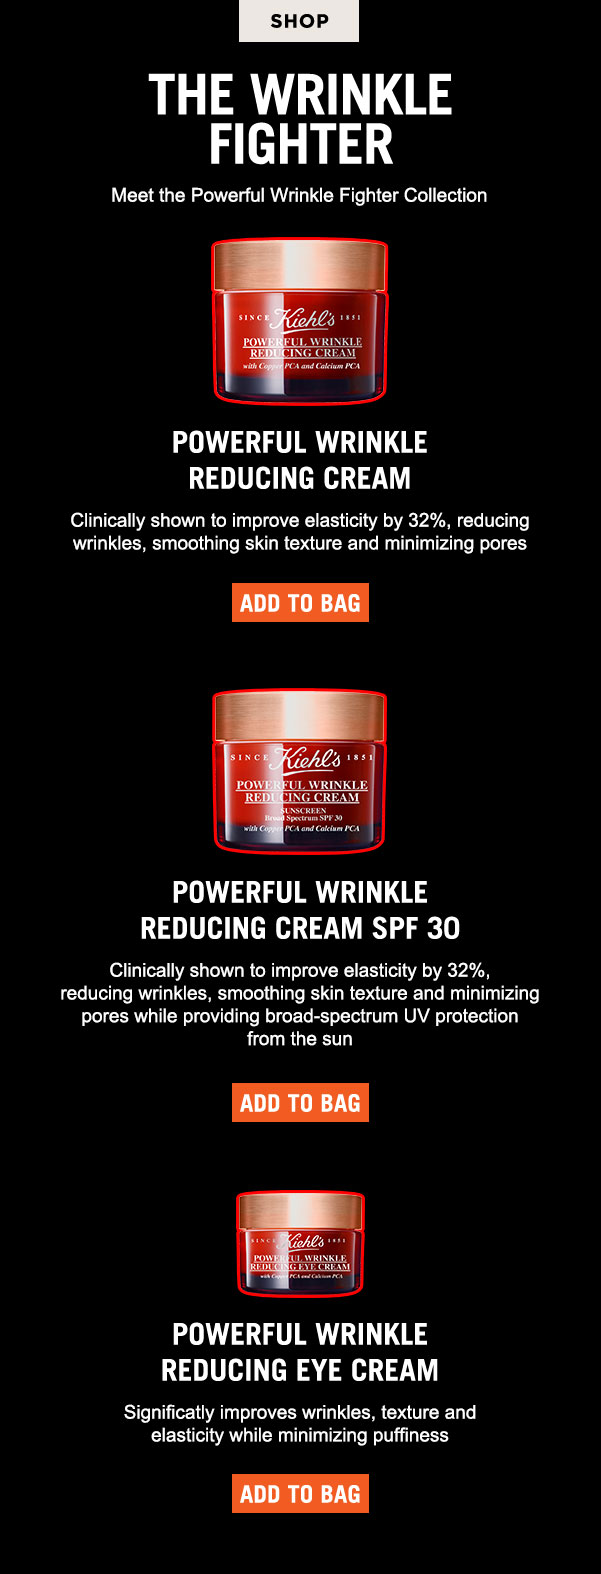 Meet the Powerful Wrinkle Fighter Collection